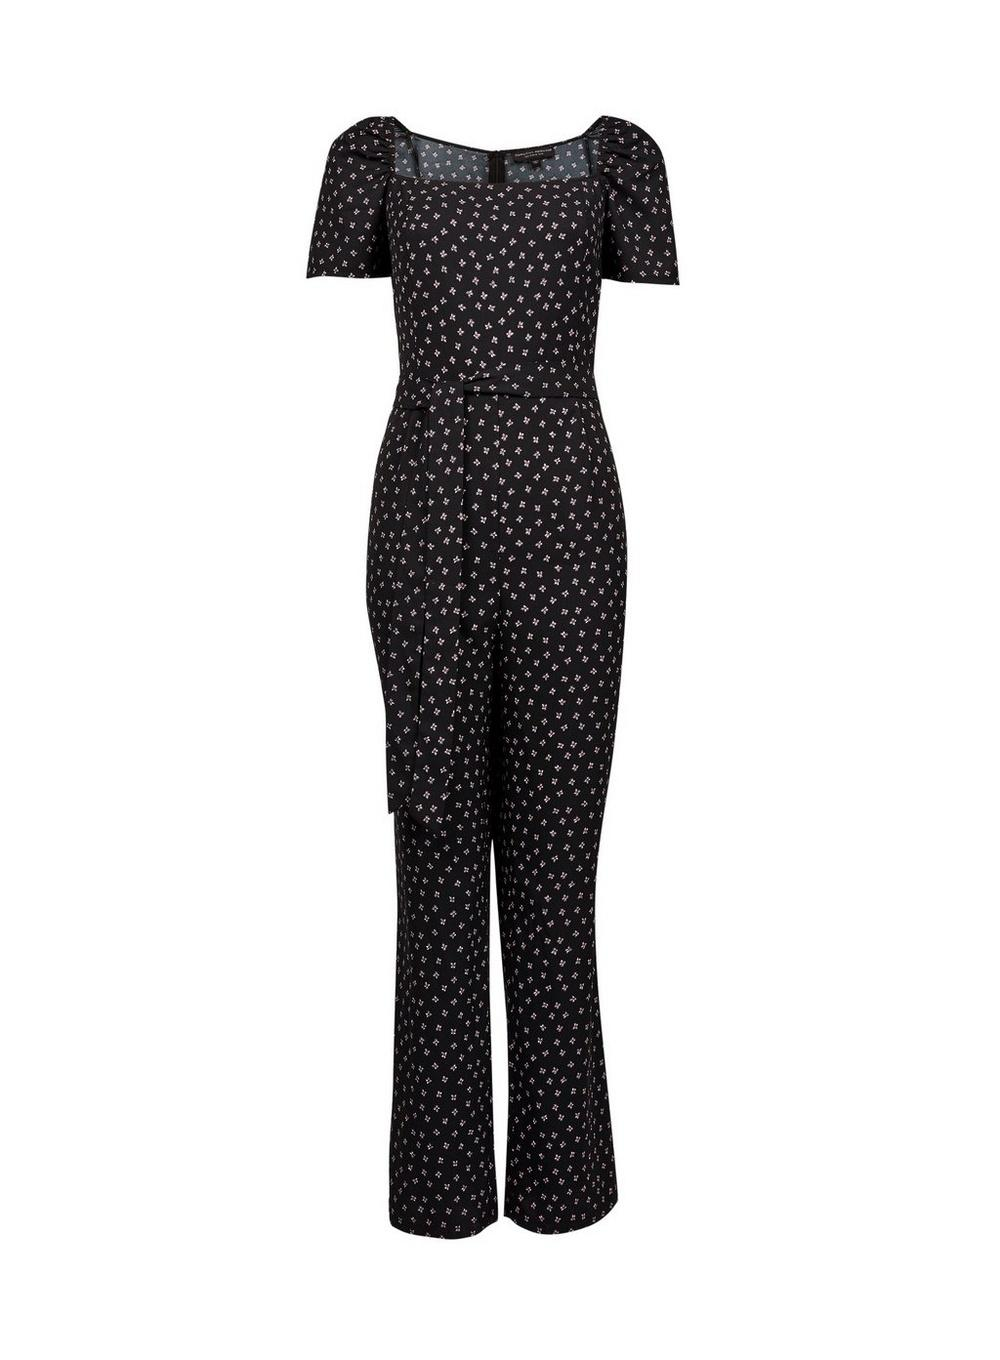 268f61b3301 Lyst - Dorothy Perkins Black Square Neck Jumpsuit in Black